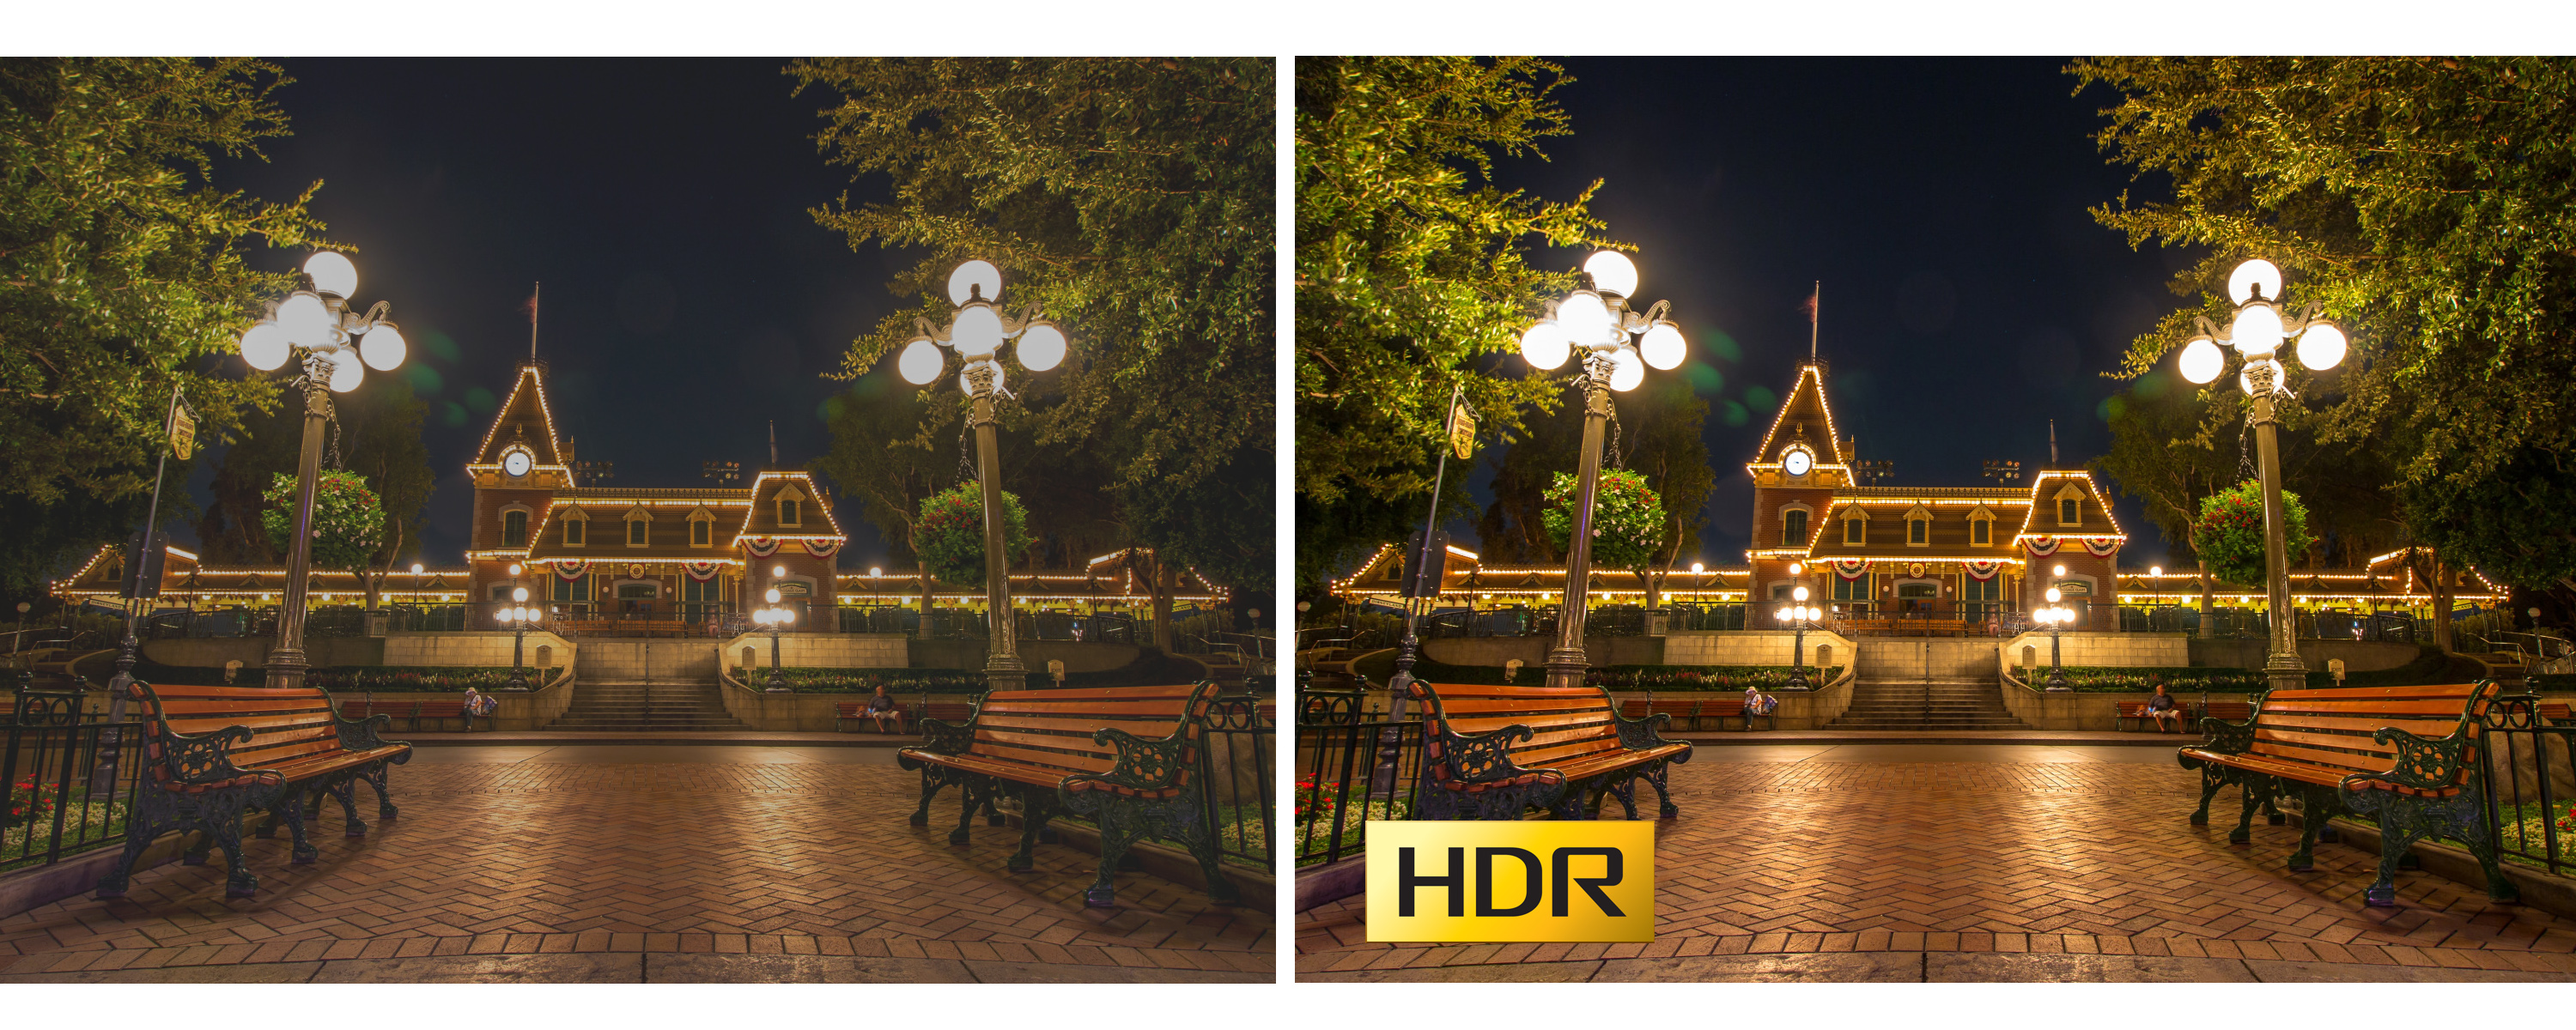 HDR (High Dynamic Range) JVC DLA-NX9